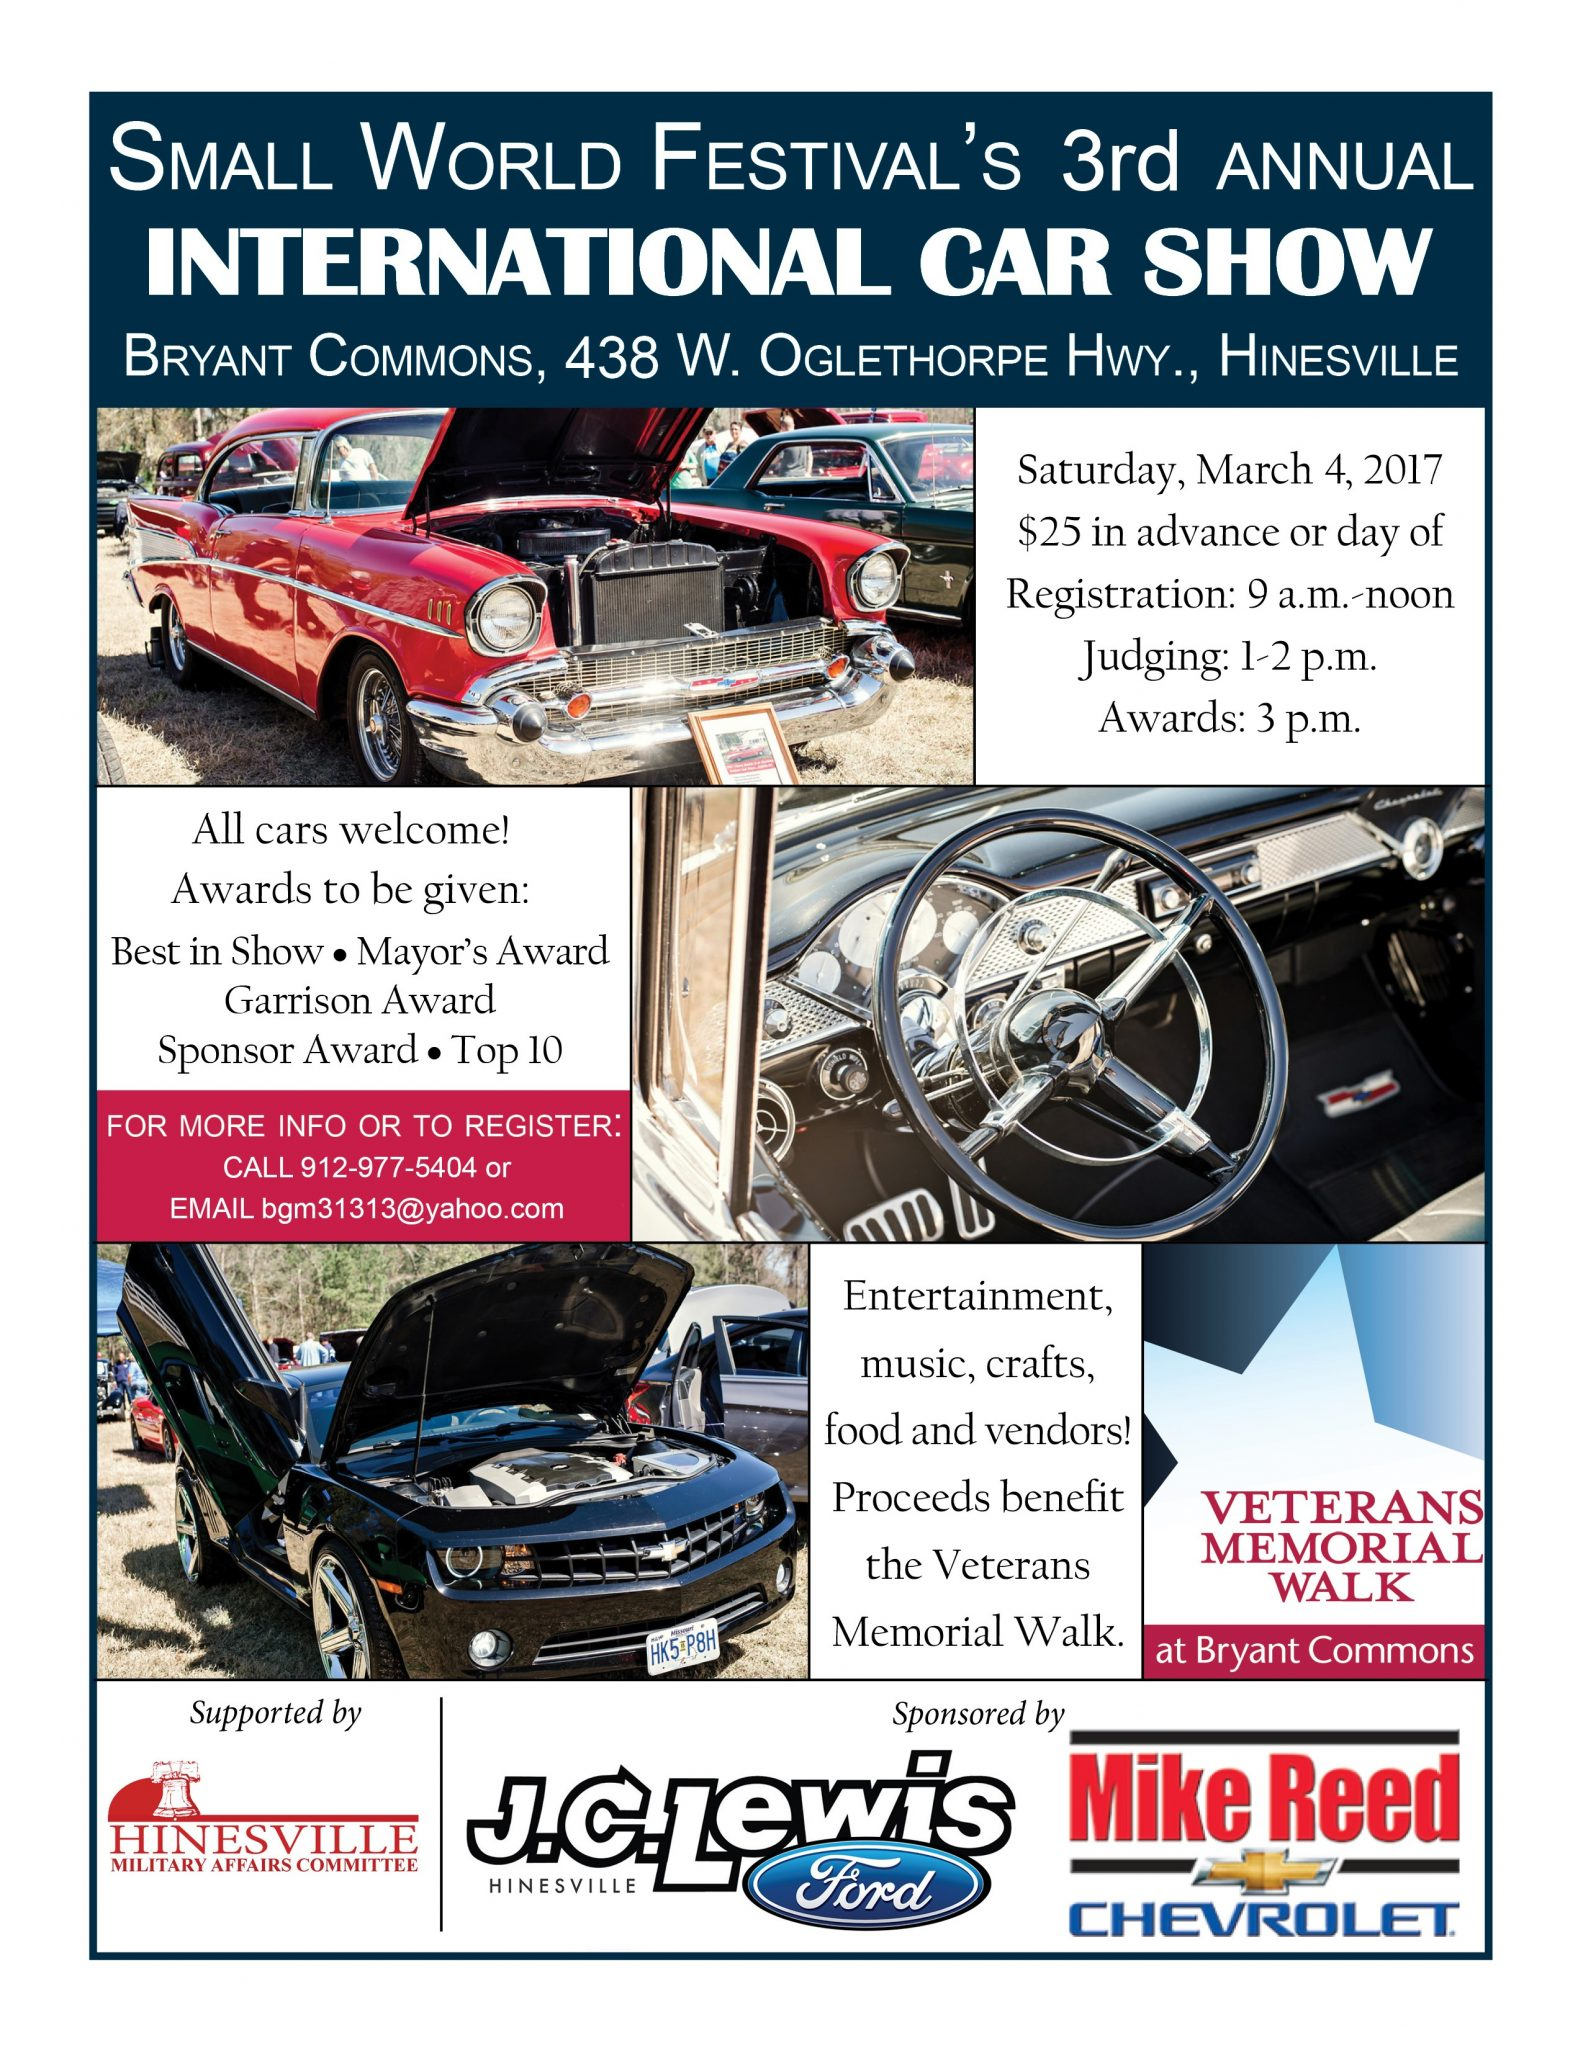 Rd Annual International Car Show At The Small World FestivalLiberty - Unique car show awards